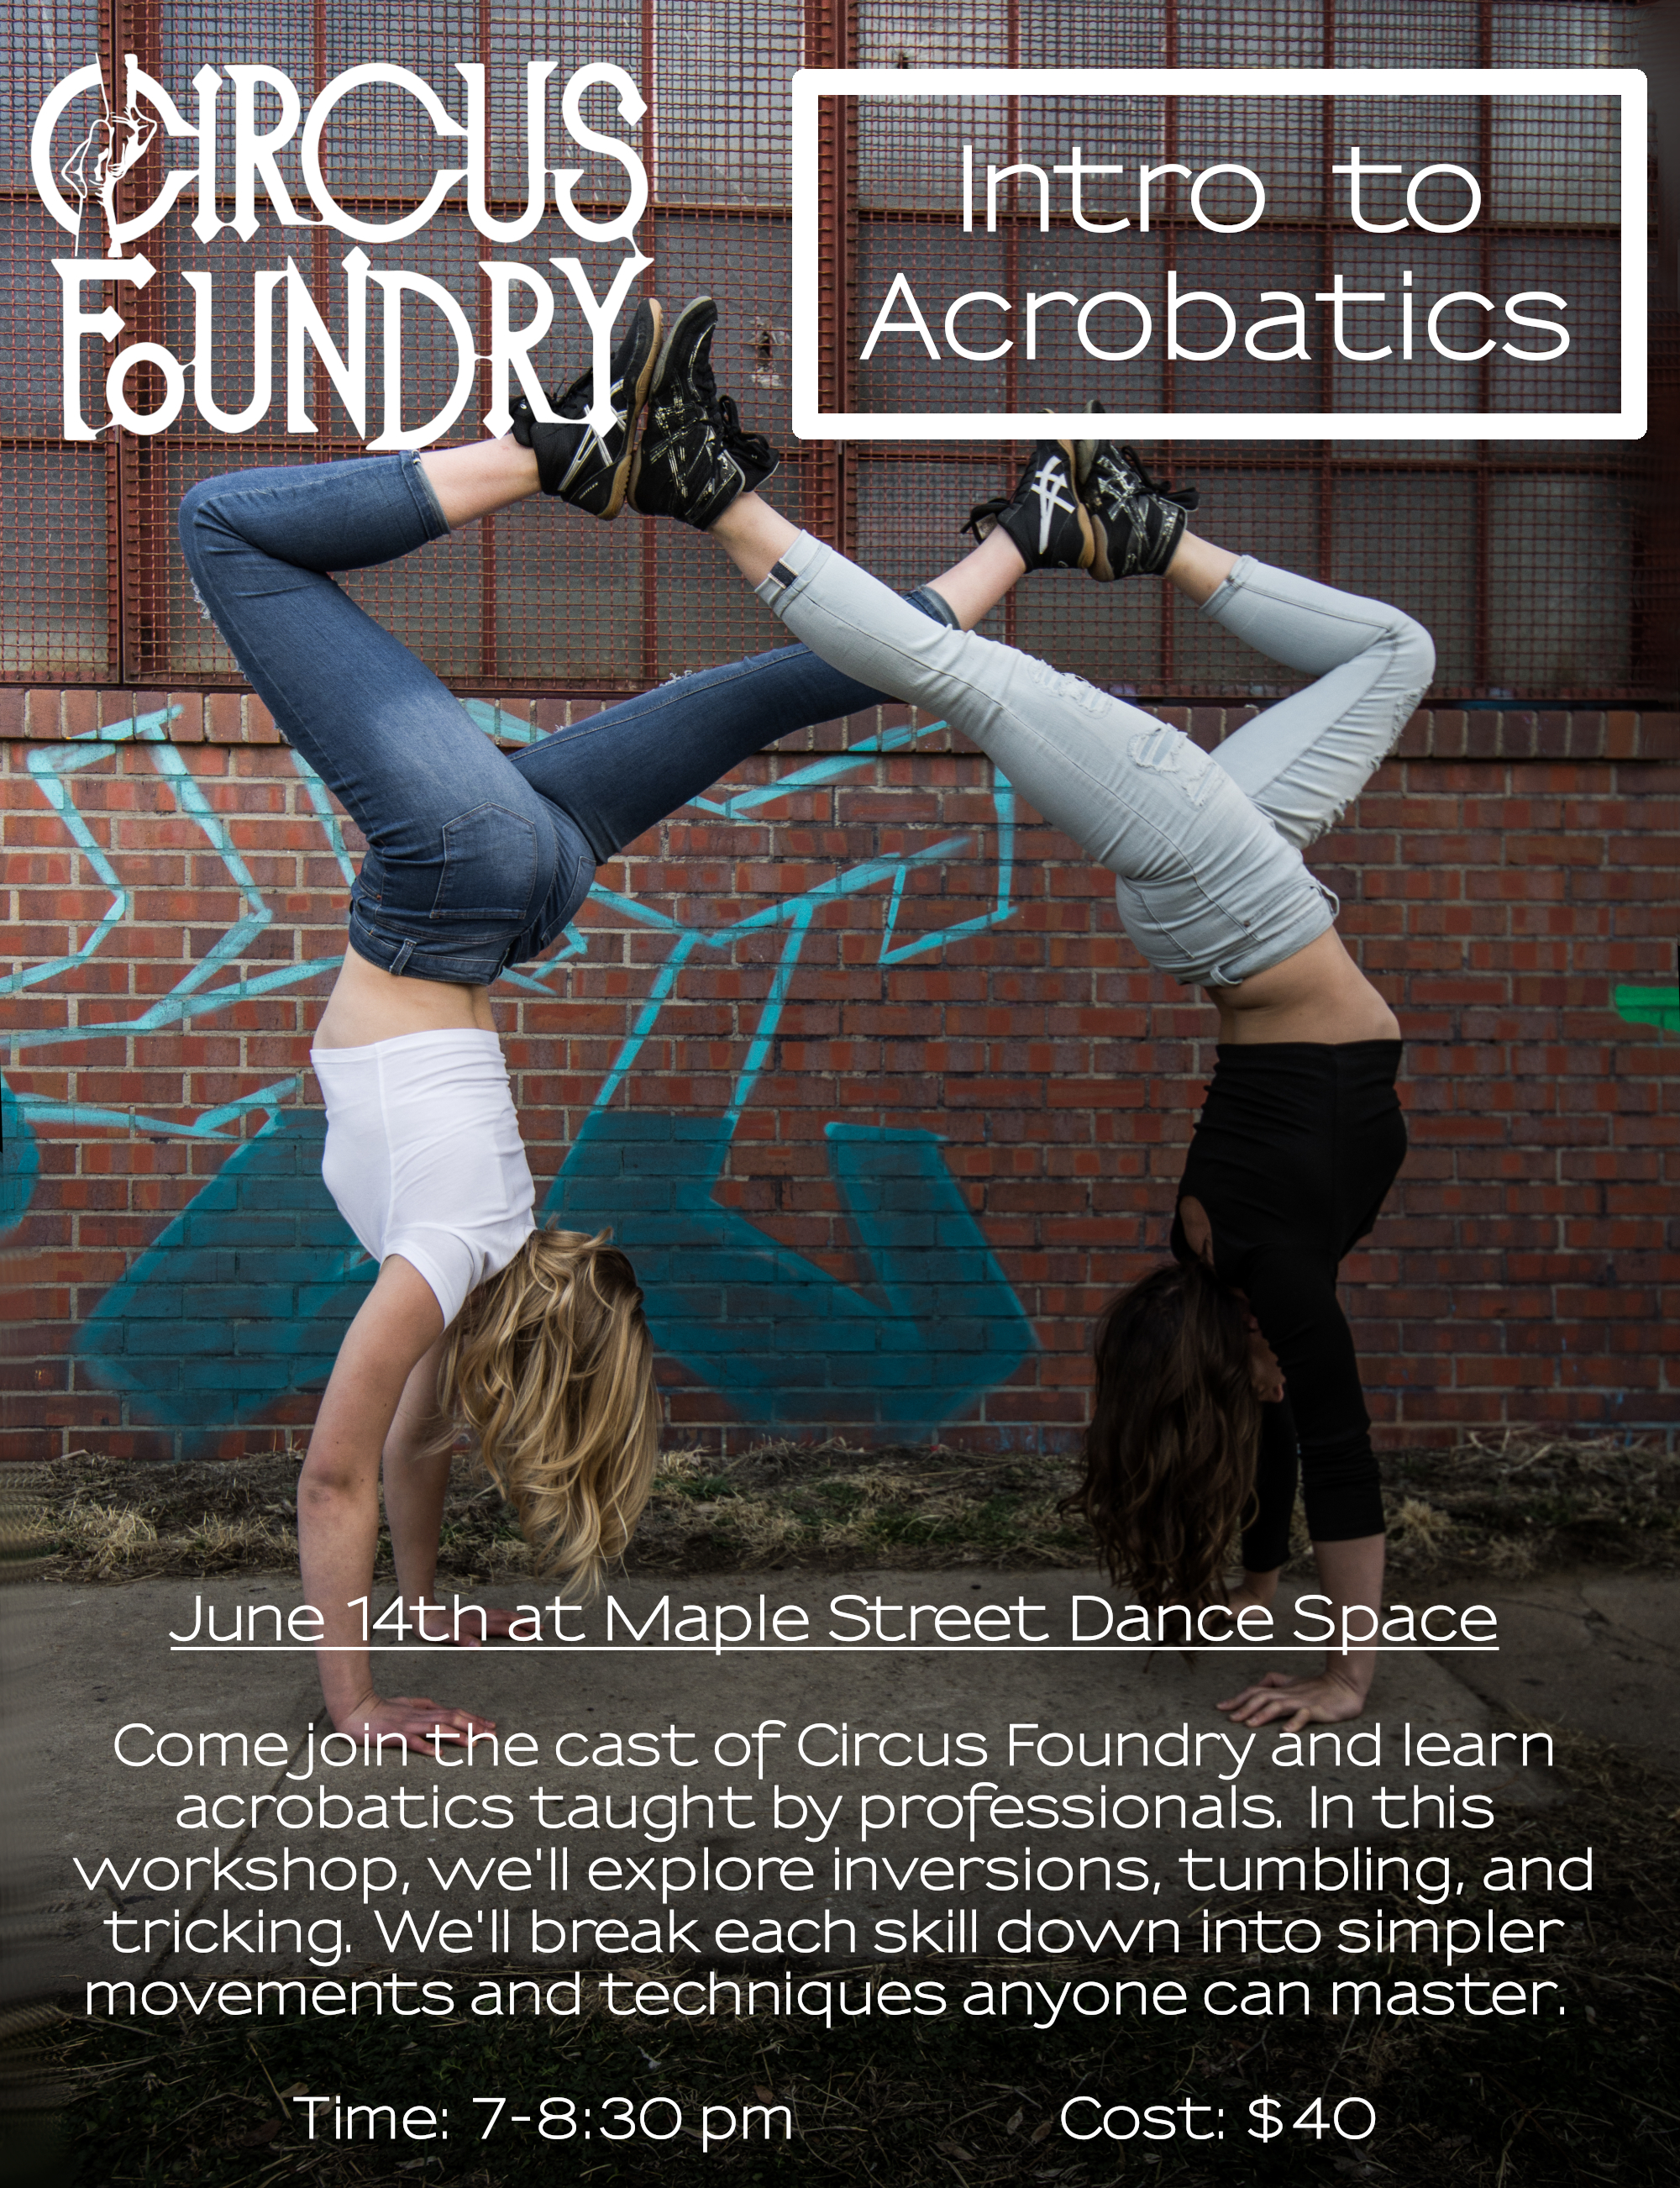 maplestreetdancespace acrobatics workshop rescheduled.jpg